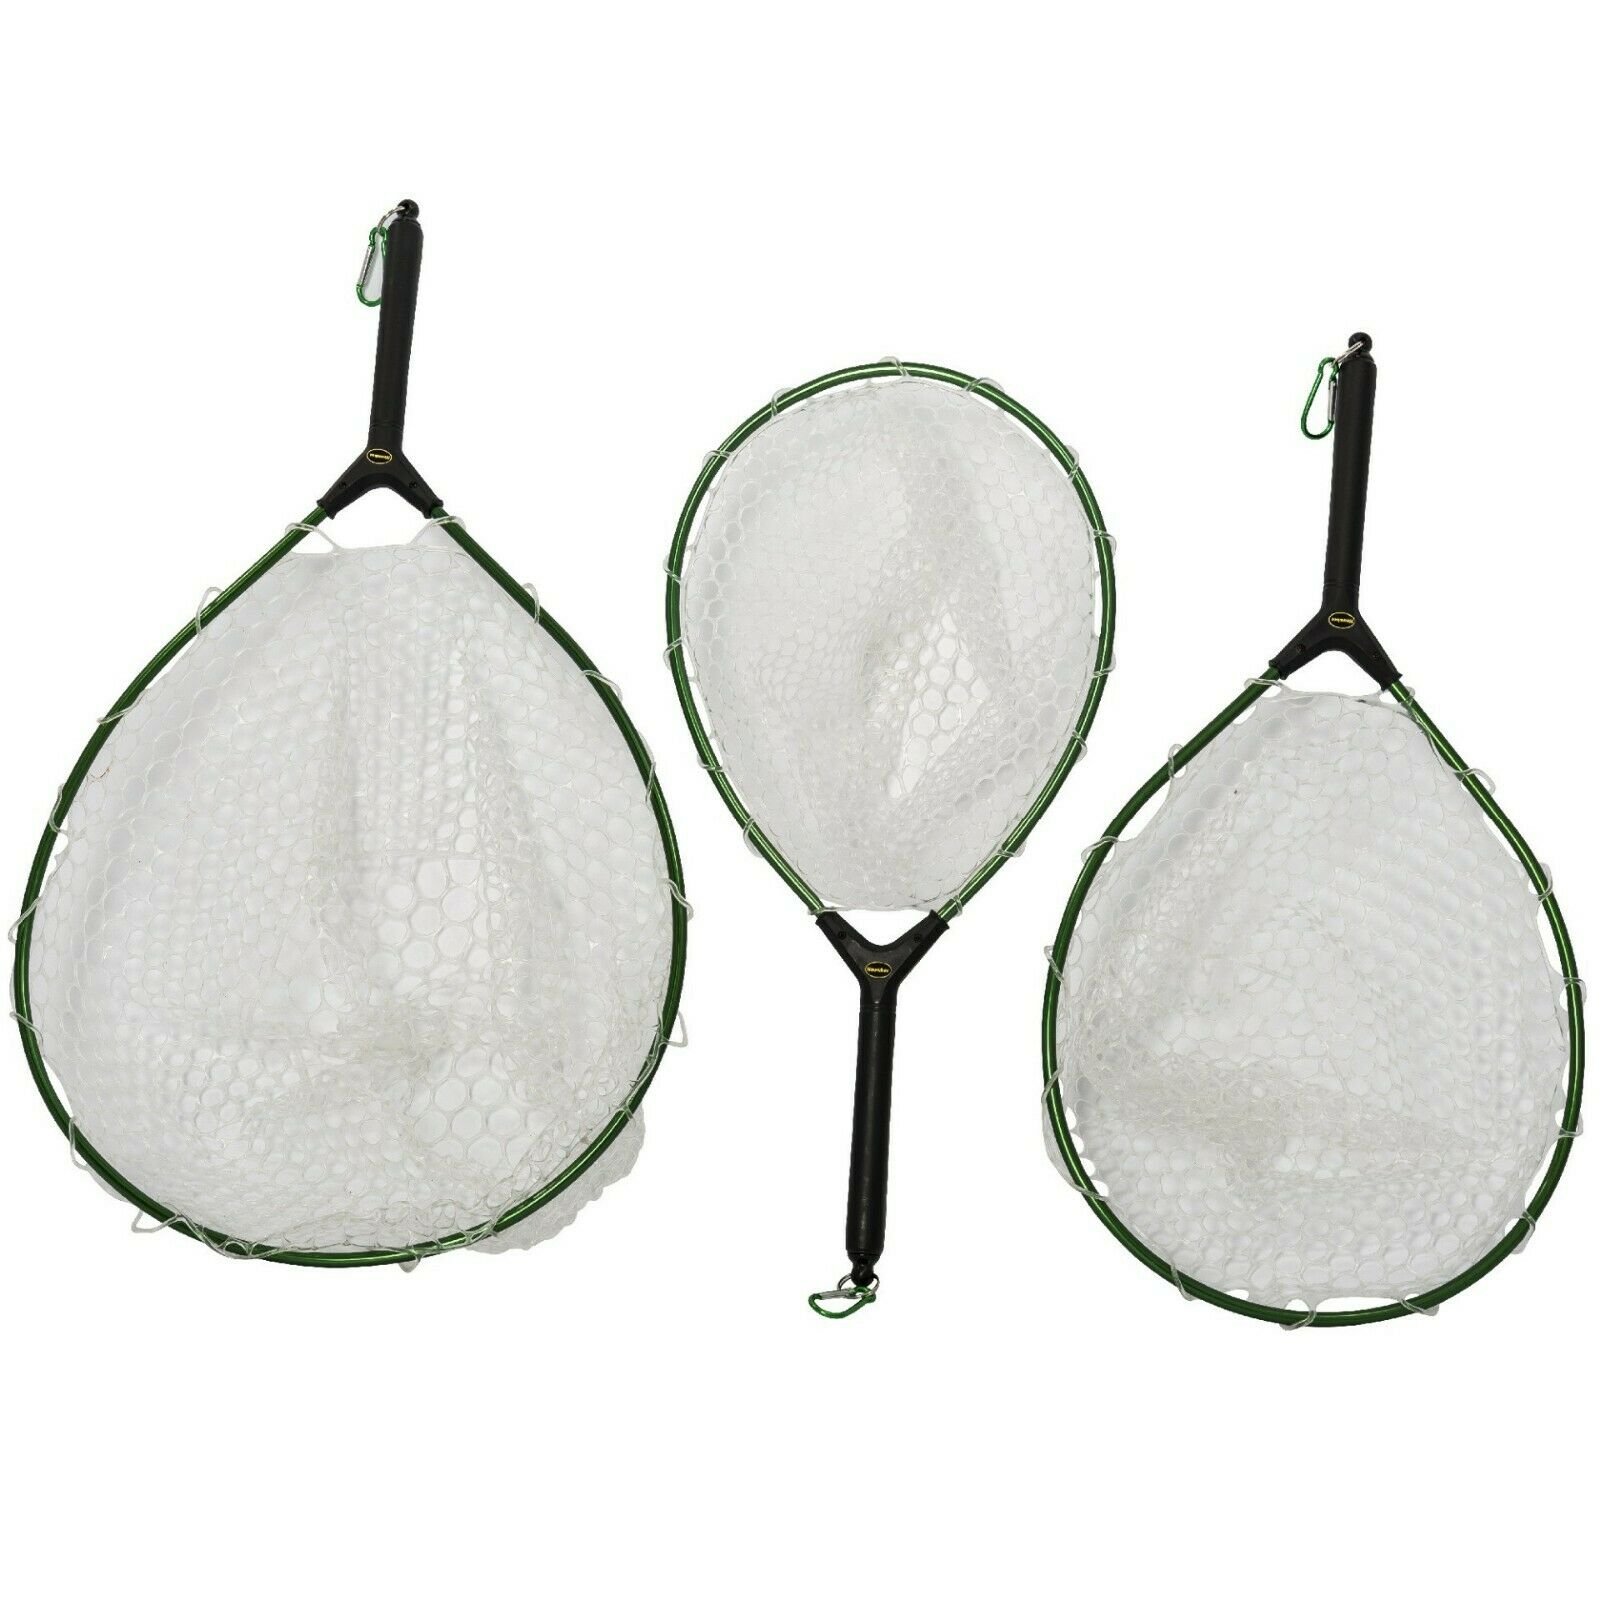 Snowbee Rubber Mesh Hand Trout Net